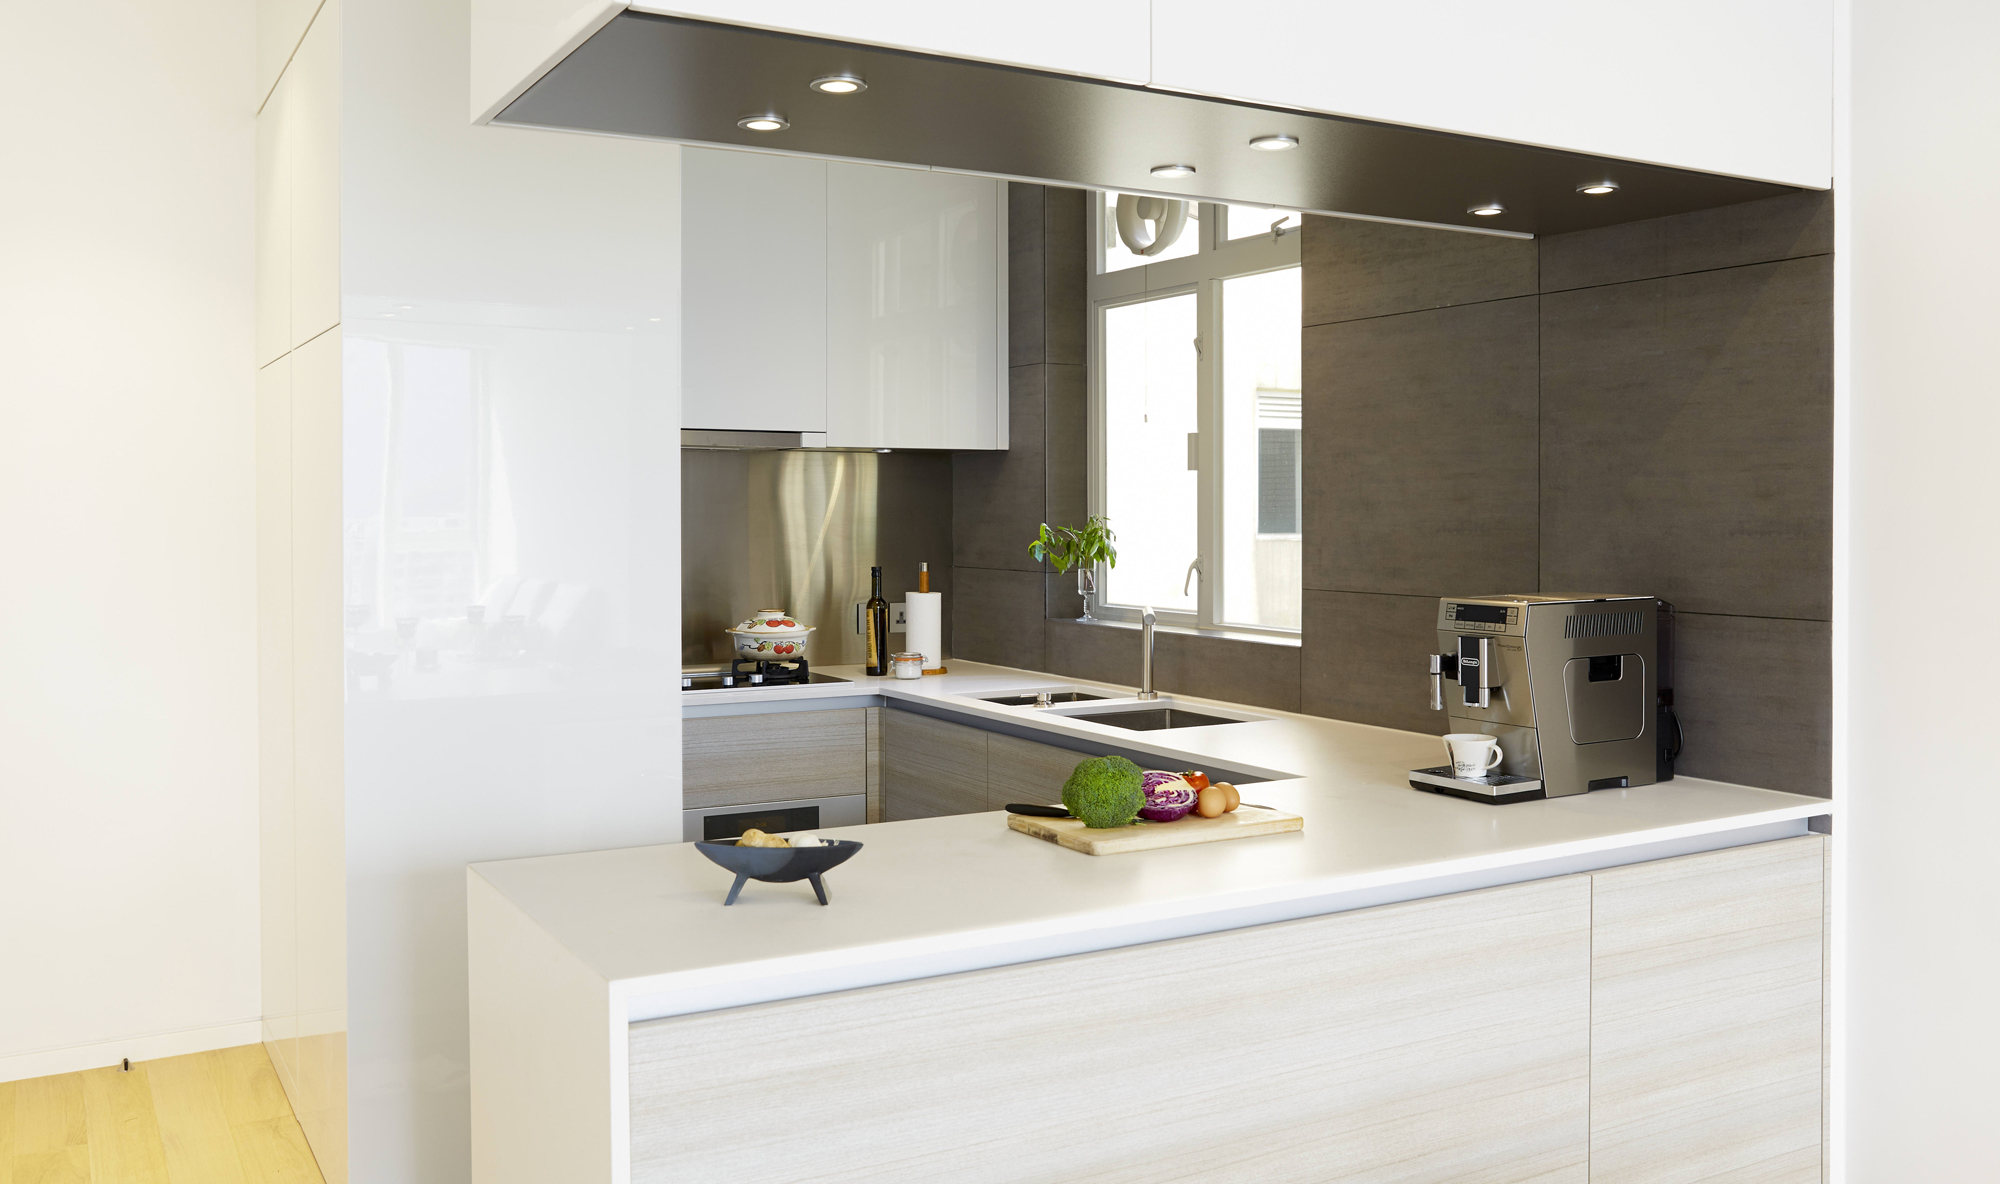 Kitchen The Cabinetry (HK$75,000) Was Made By Chevalier (3/F, Chevalier  Engineering Service Centre, 21 Sheung Yuet Road, Kowloon Bay, Tel: 2111  4725) And ... Part 52